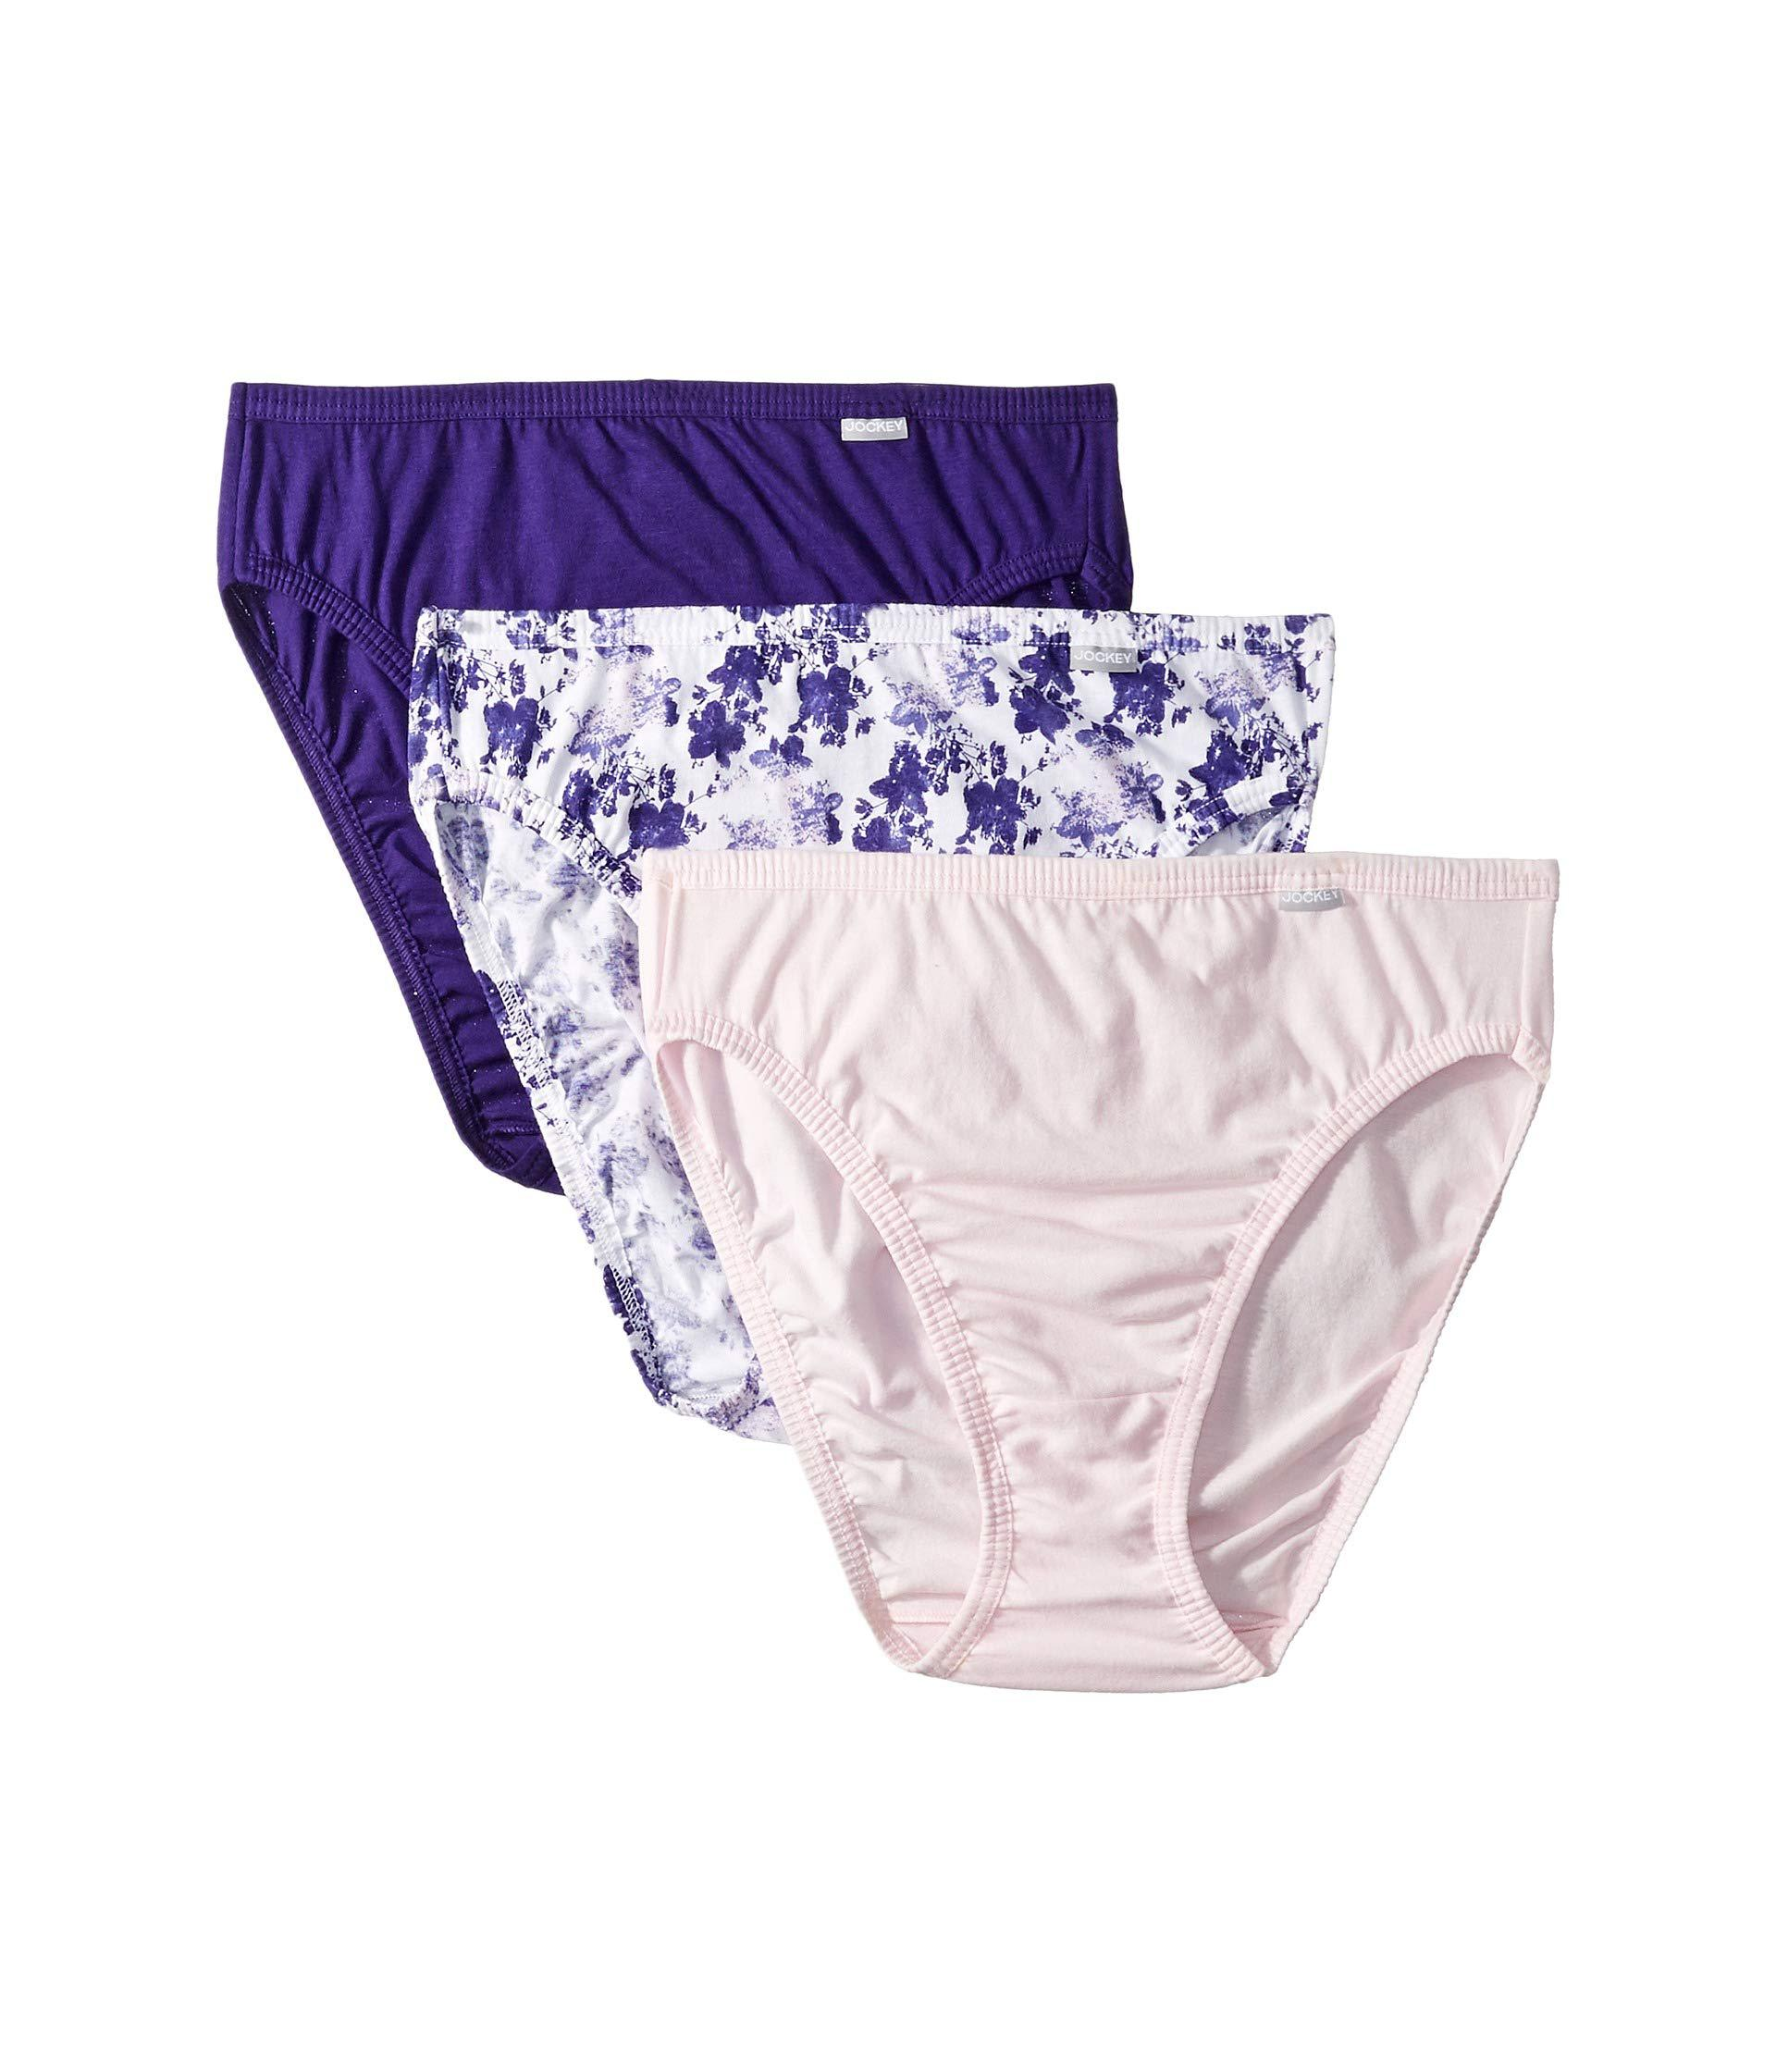 Lyst jockey elance french cut pack violet mist nouveau jpg 1920x2240 Jockey silk  underwear for women 2379f1b49